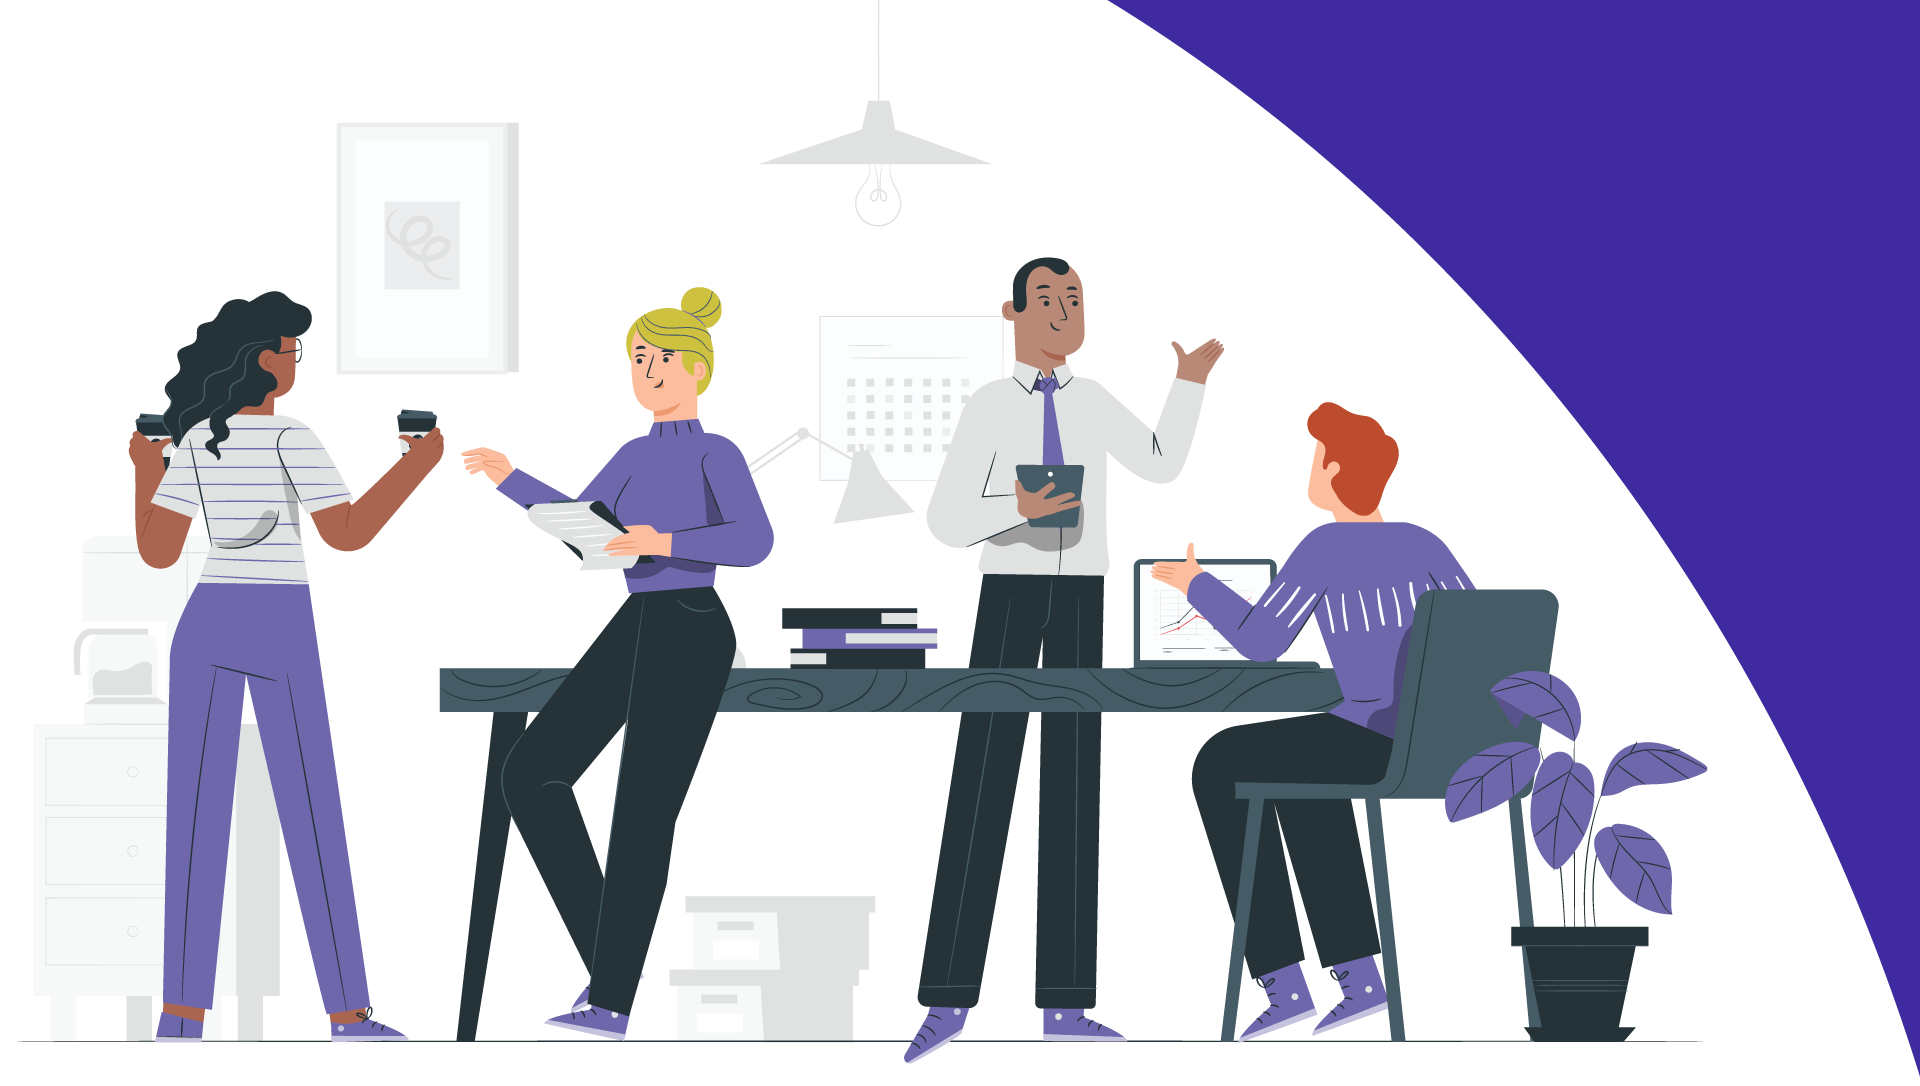 illustration of office workers interacting